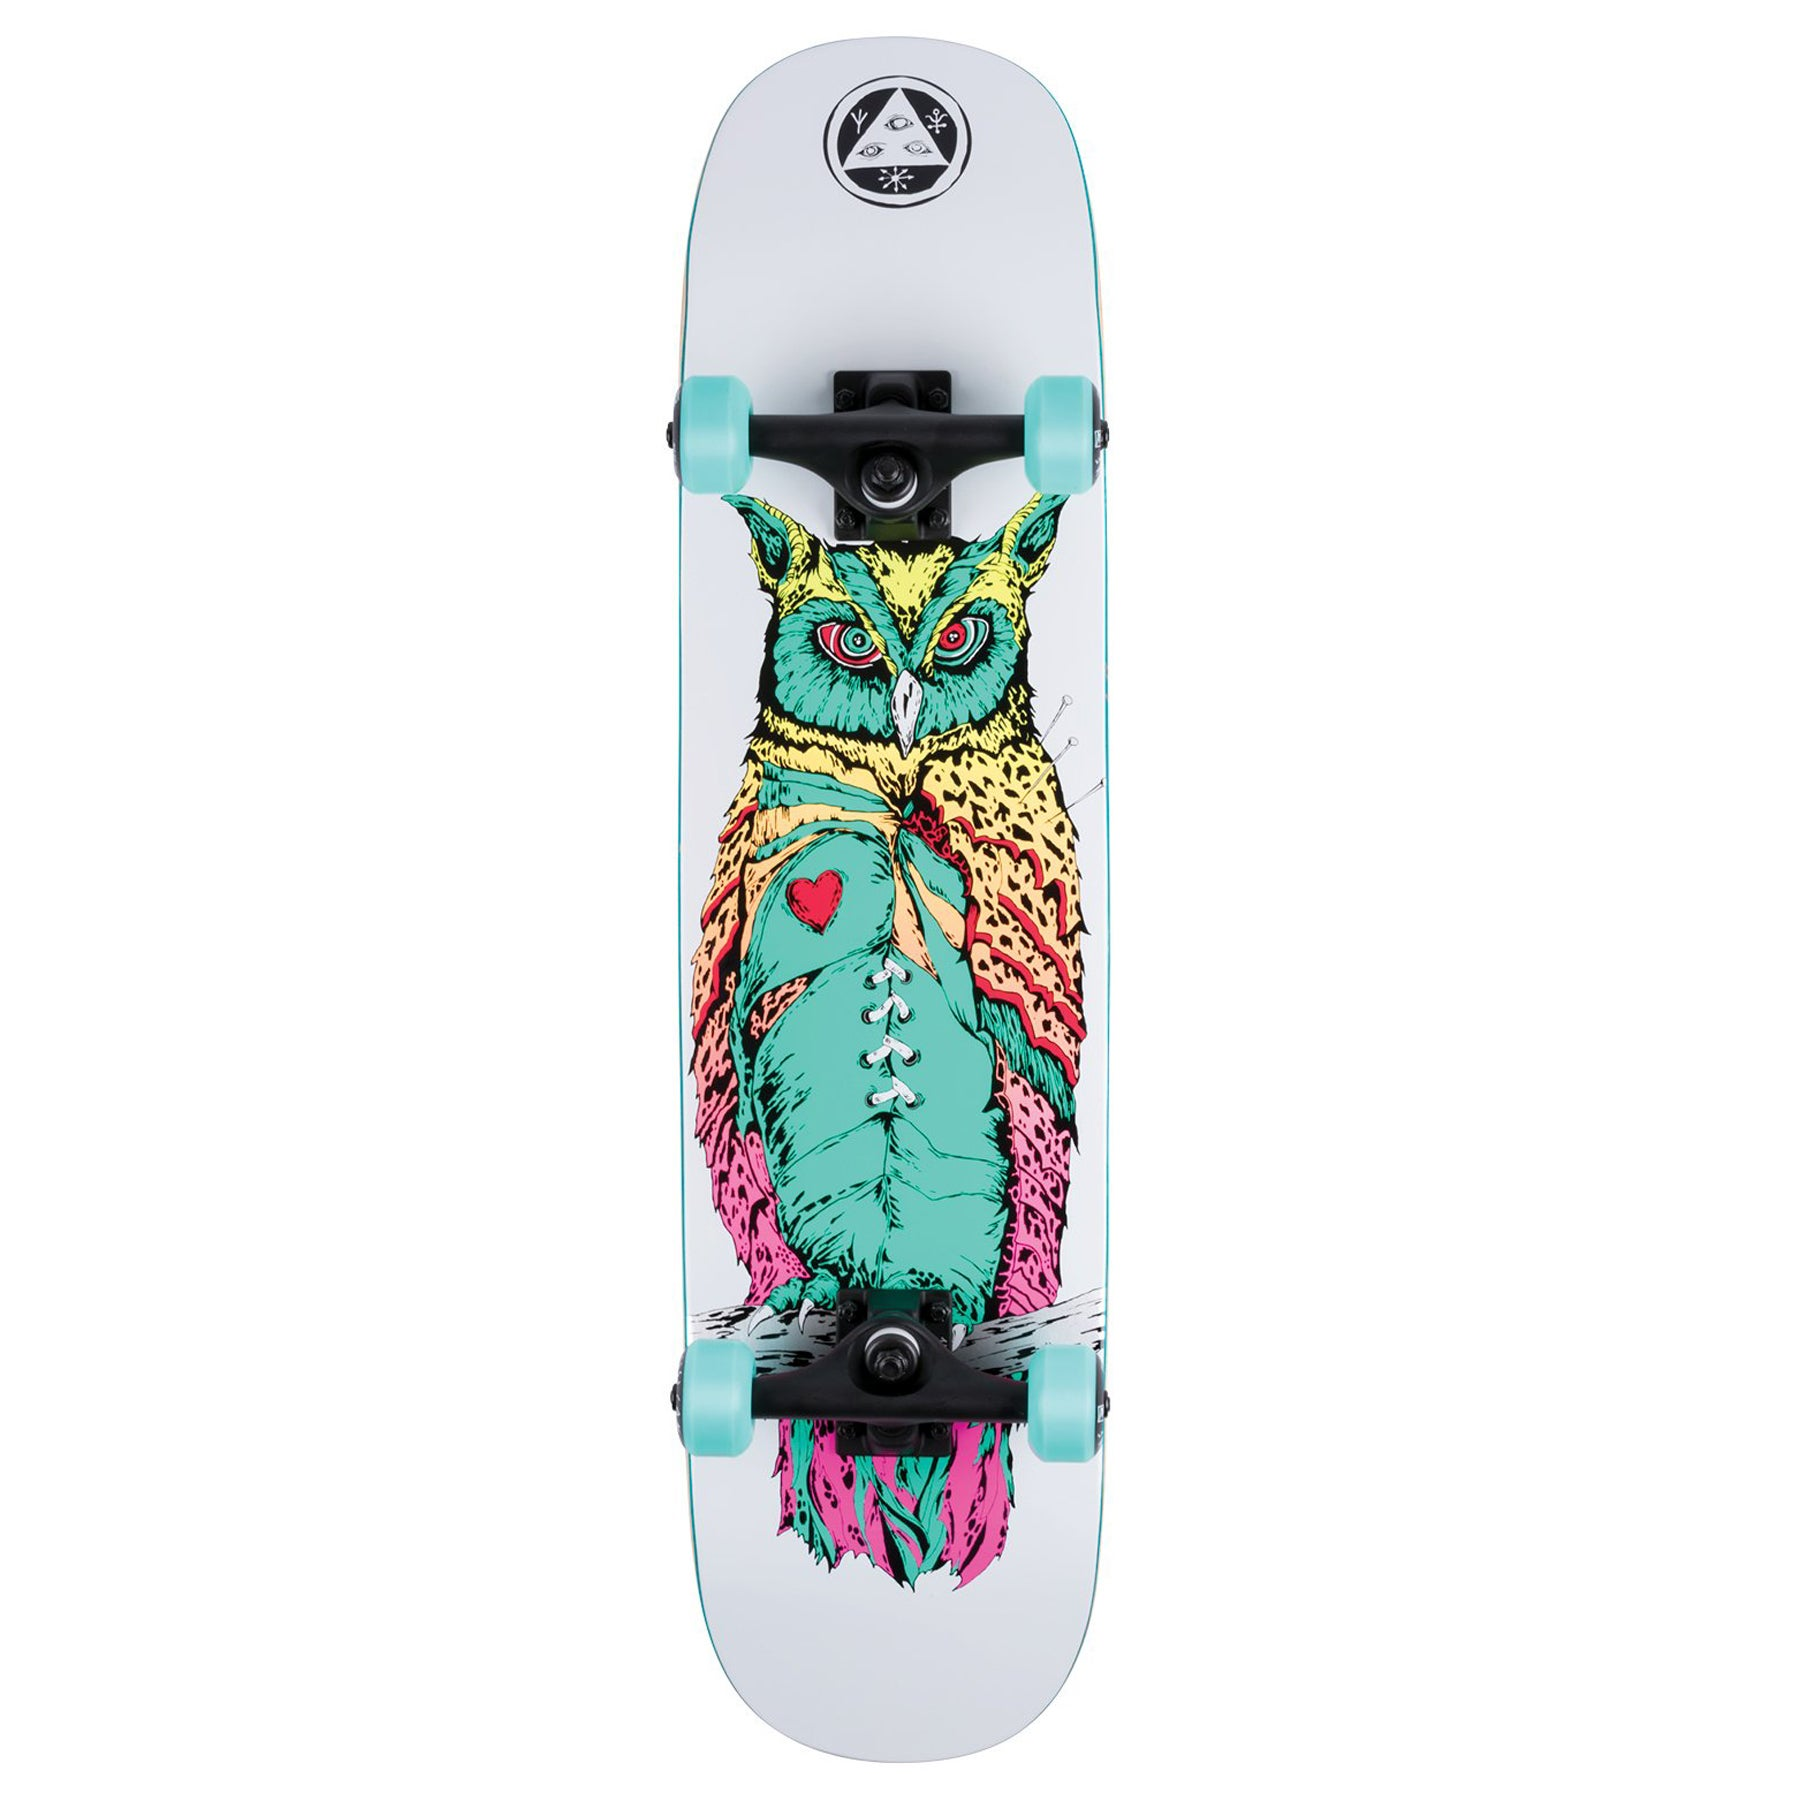 Welcome Heartwise On Scaled Down Amulet 7.75 Inch Complete Skateboard Skateboard - White Surf Fade